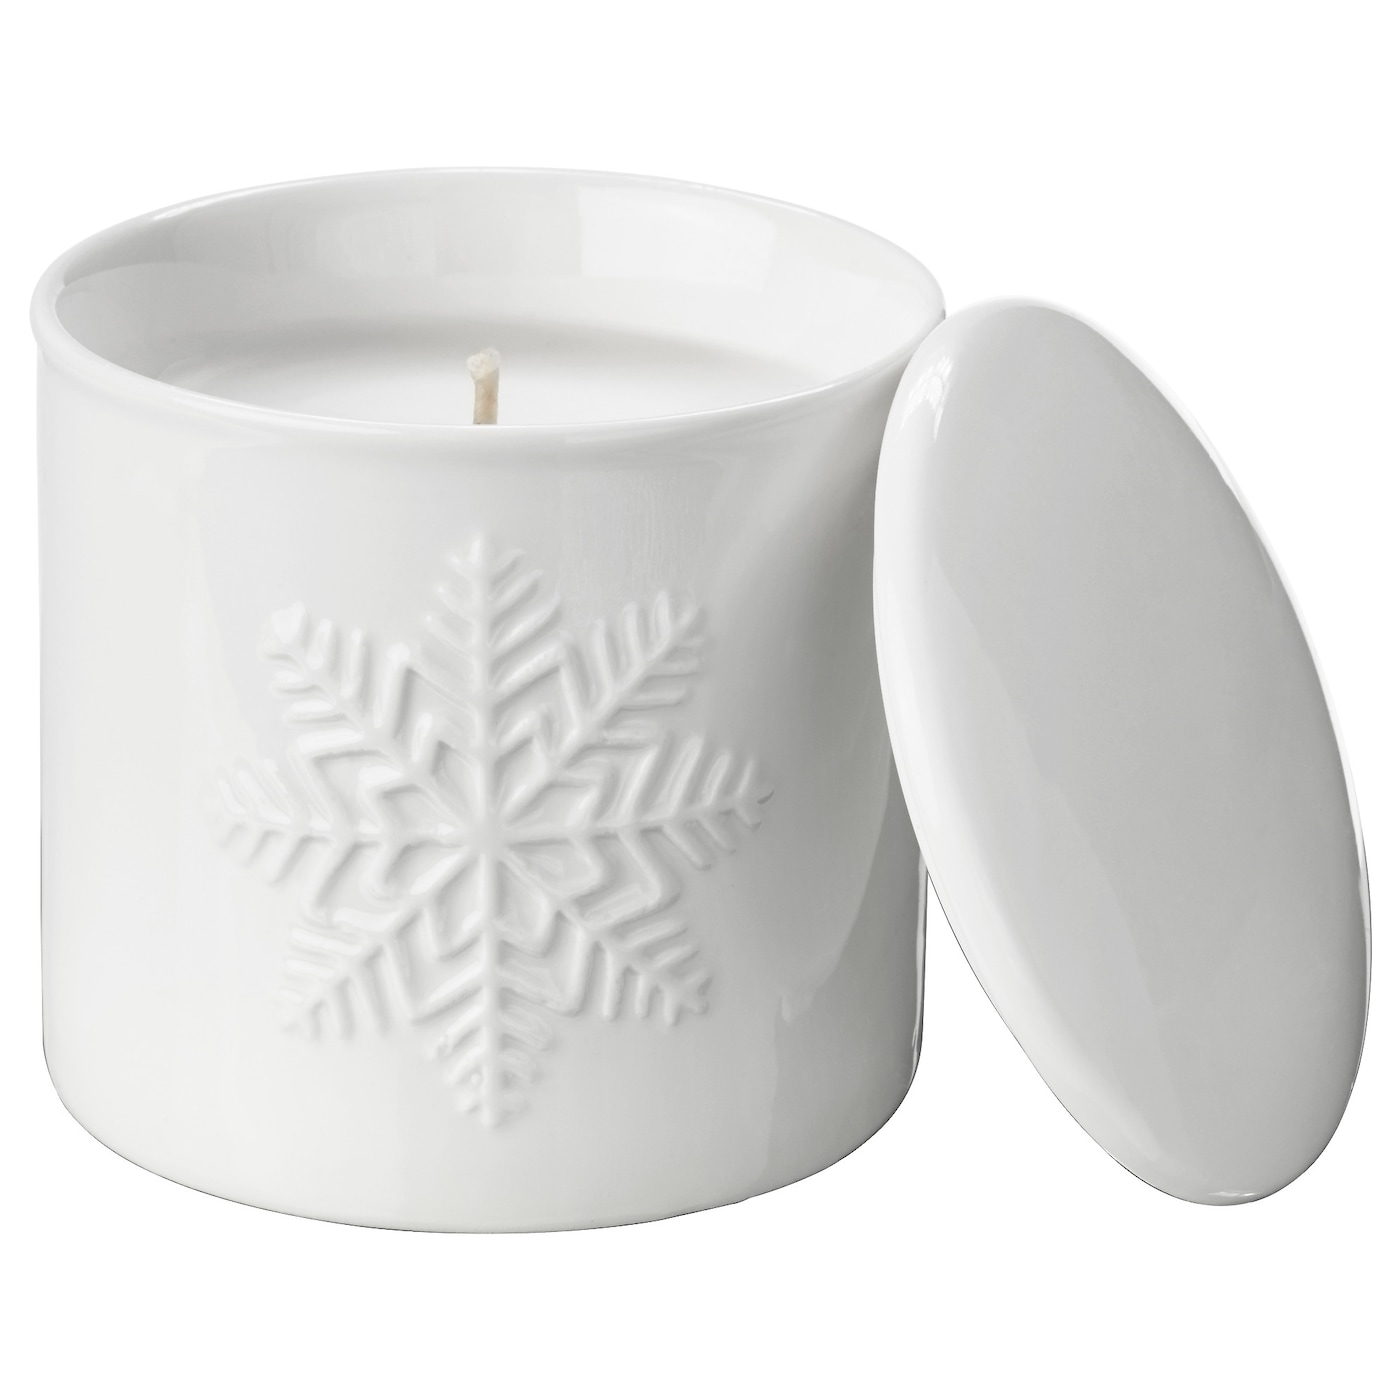 IKEA VINTER 2017 scented candle in pot with lid